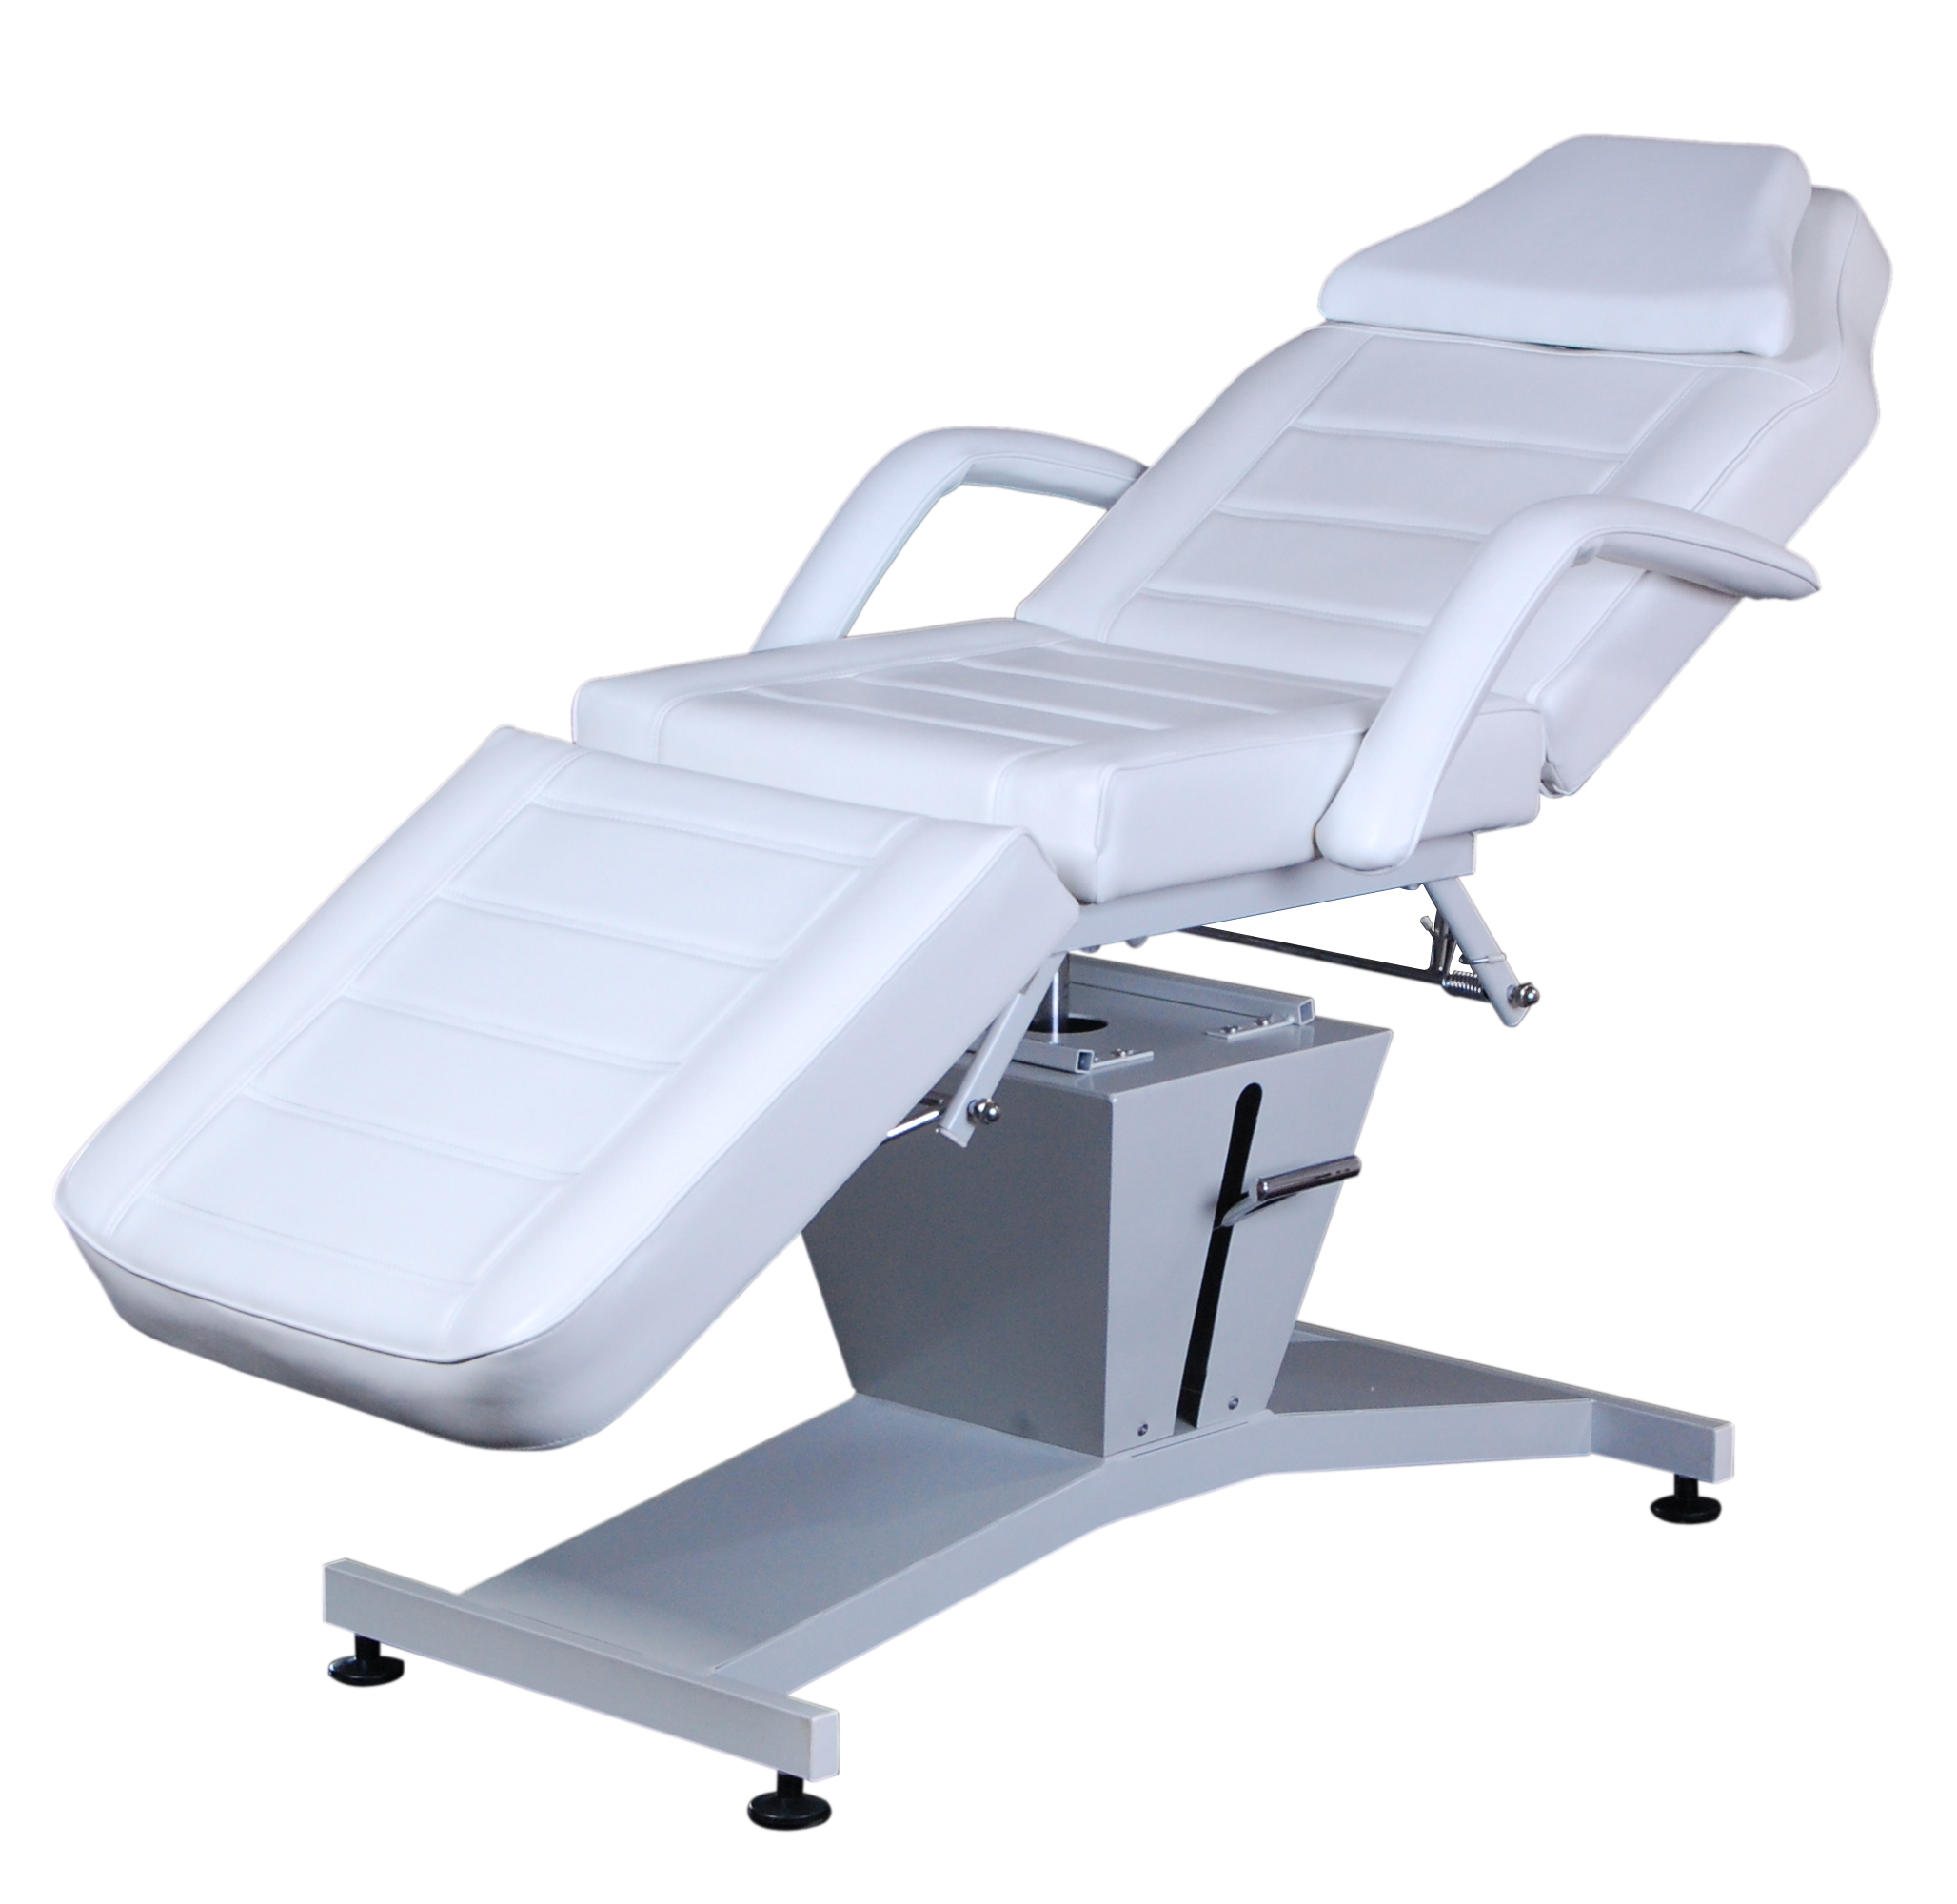 Chair Bed Canada Elite Hydraulic Pro Aesthetic Spa Chair Bed Salon